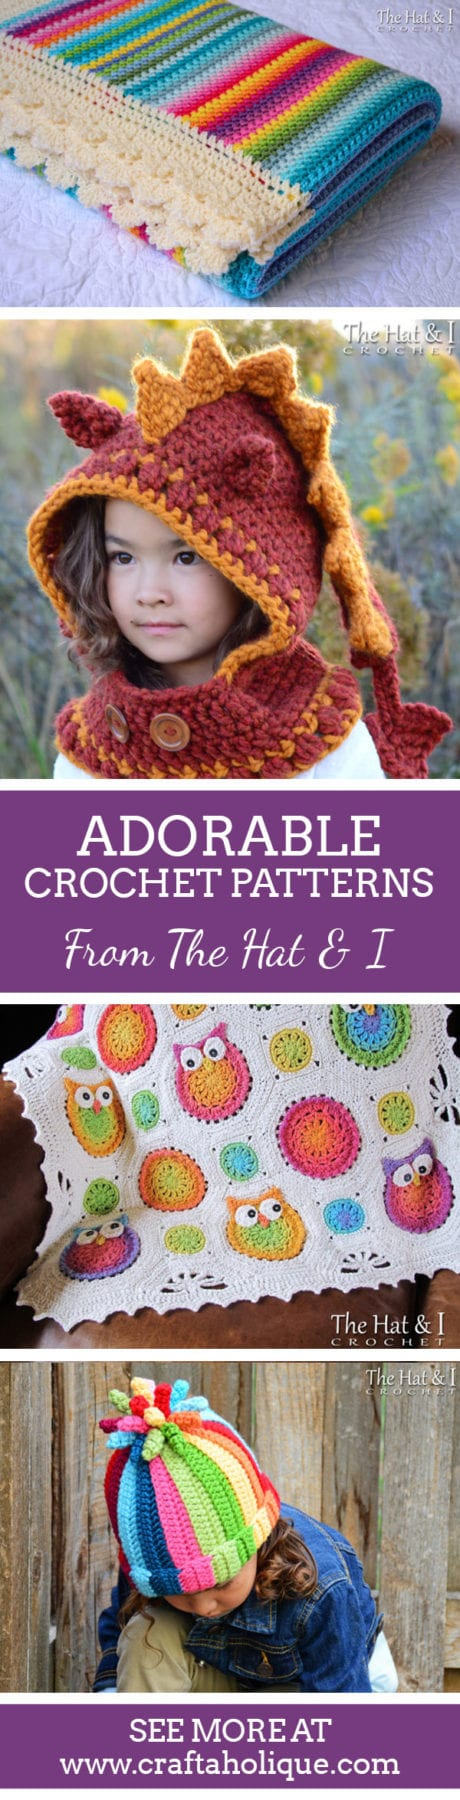 Adorable crochet patterns from The Hat & I Crochet on Etsy